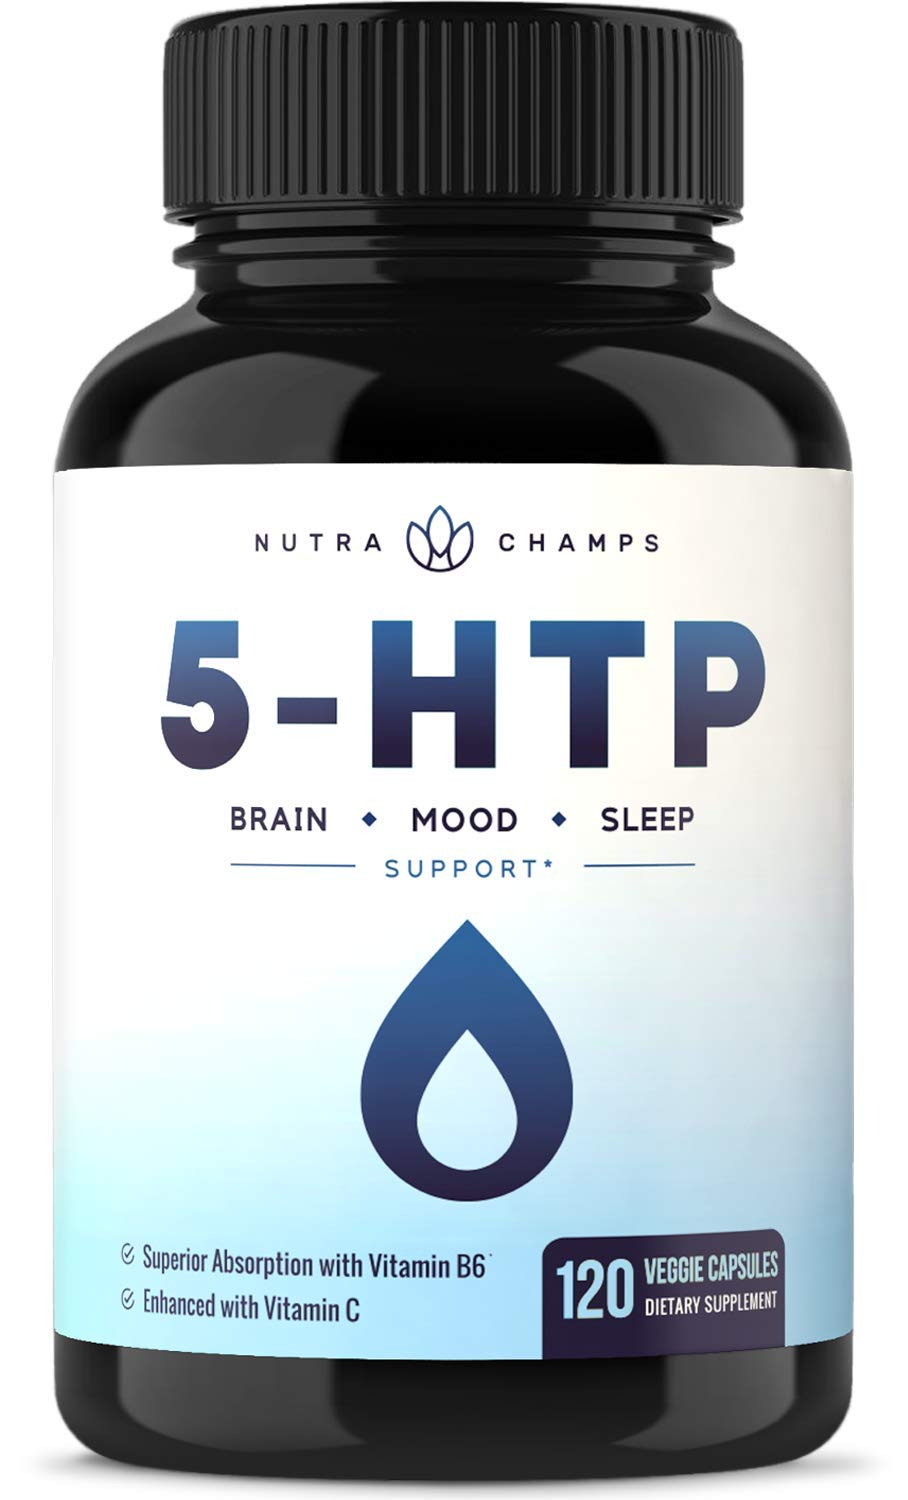 5-HTP 200mg Supplement - 120 Capsules - Naturally Supports Brain Health, Mood & Sleep - Natural Calm & Relaxing Serotonin Boost - Enhanced with Vitamin B6 & Vitamin C for Superior Absorption & Results